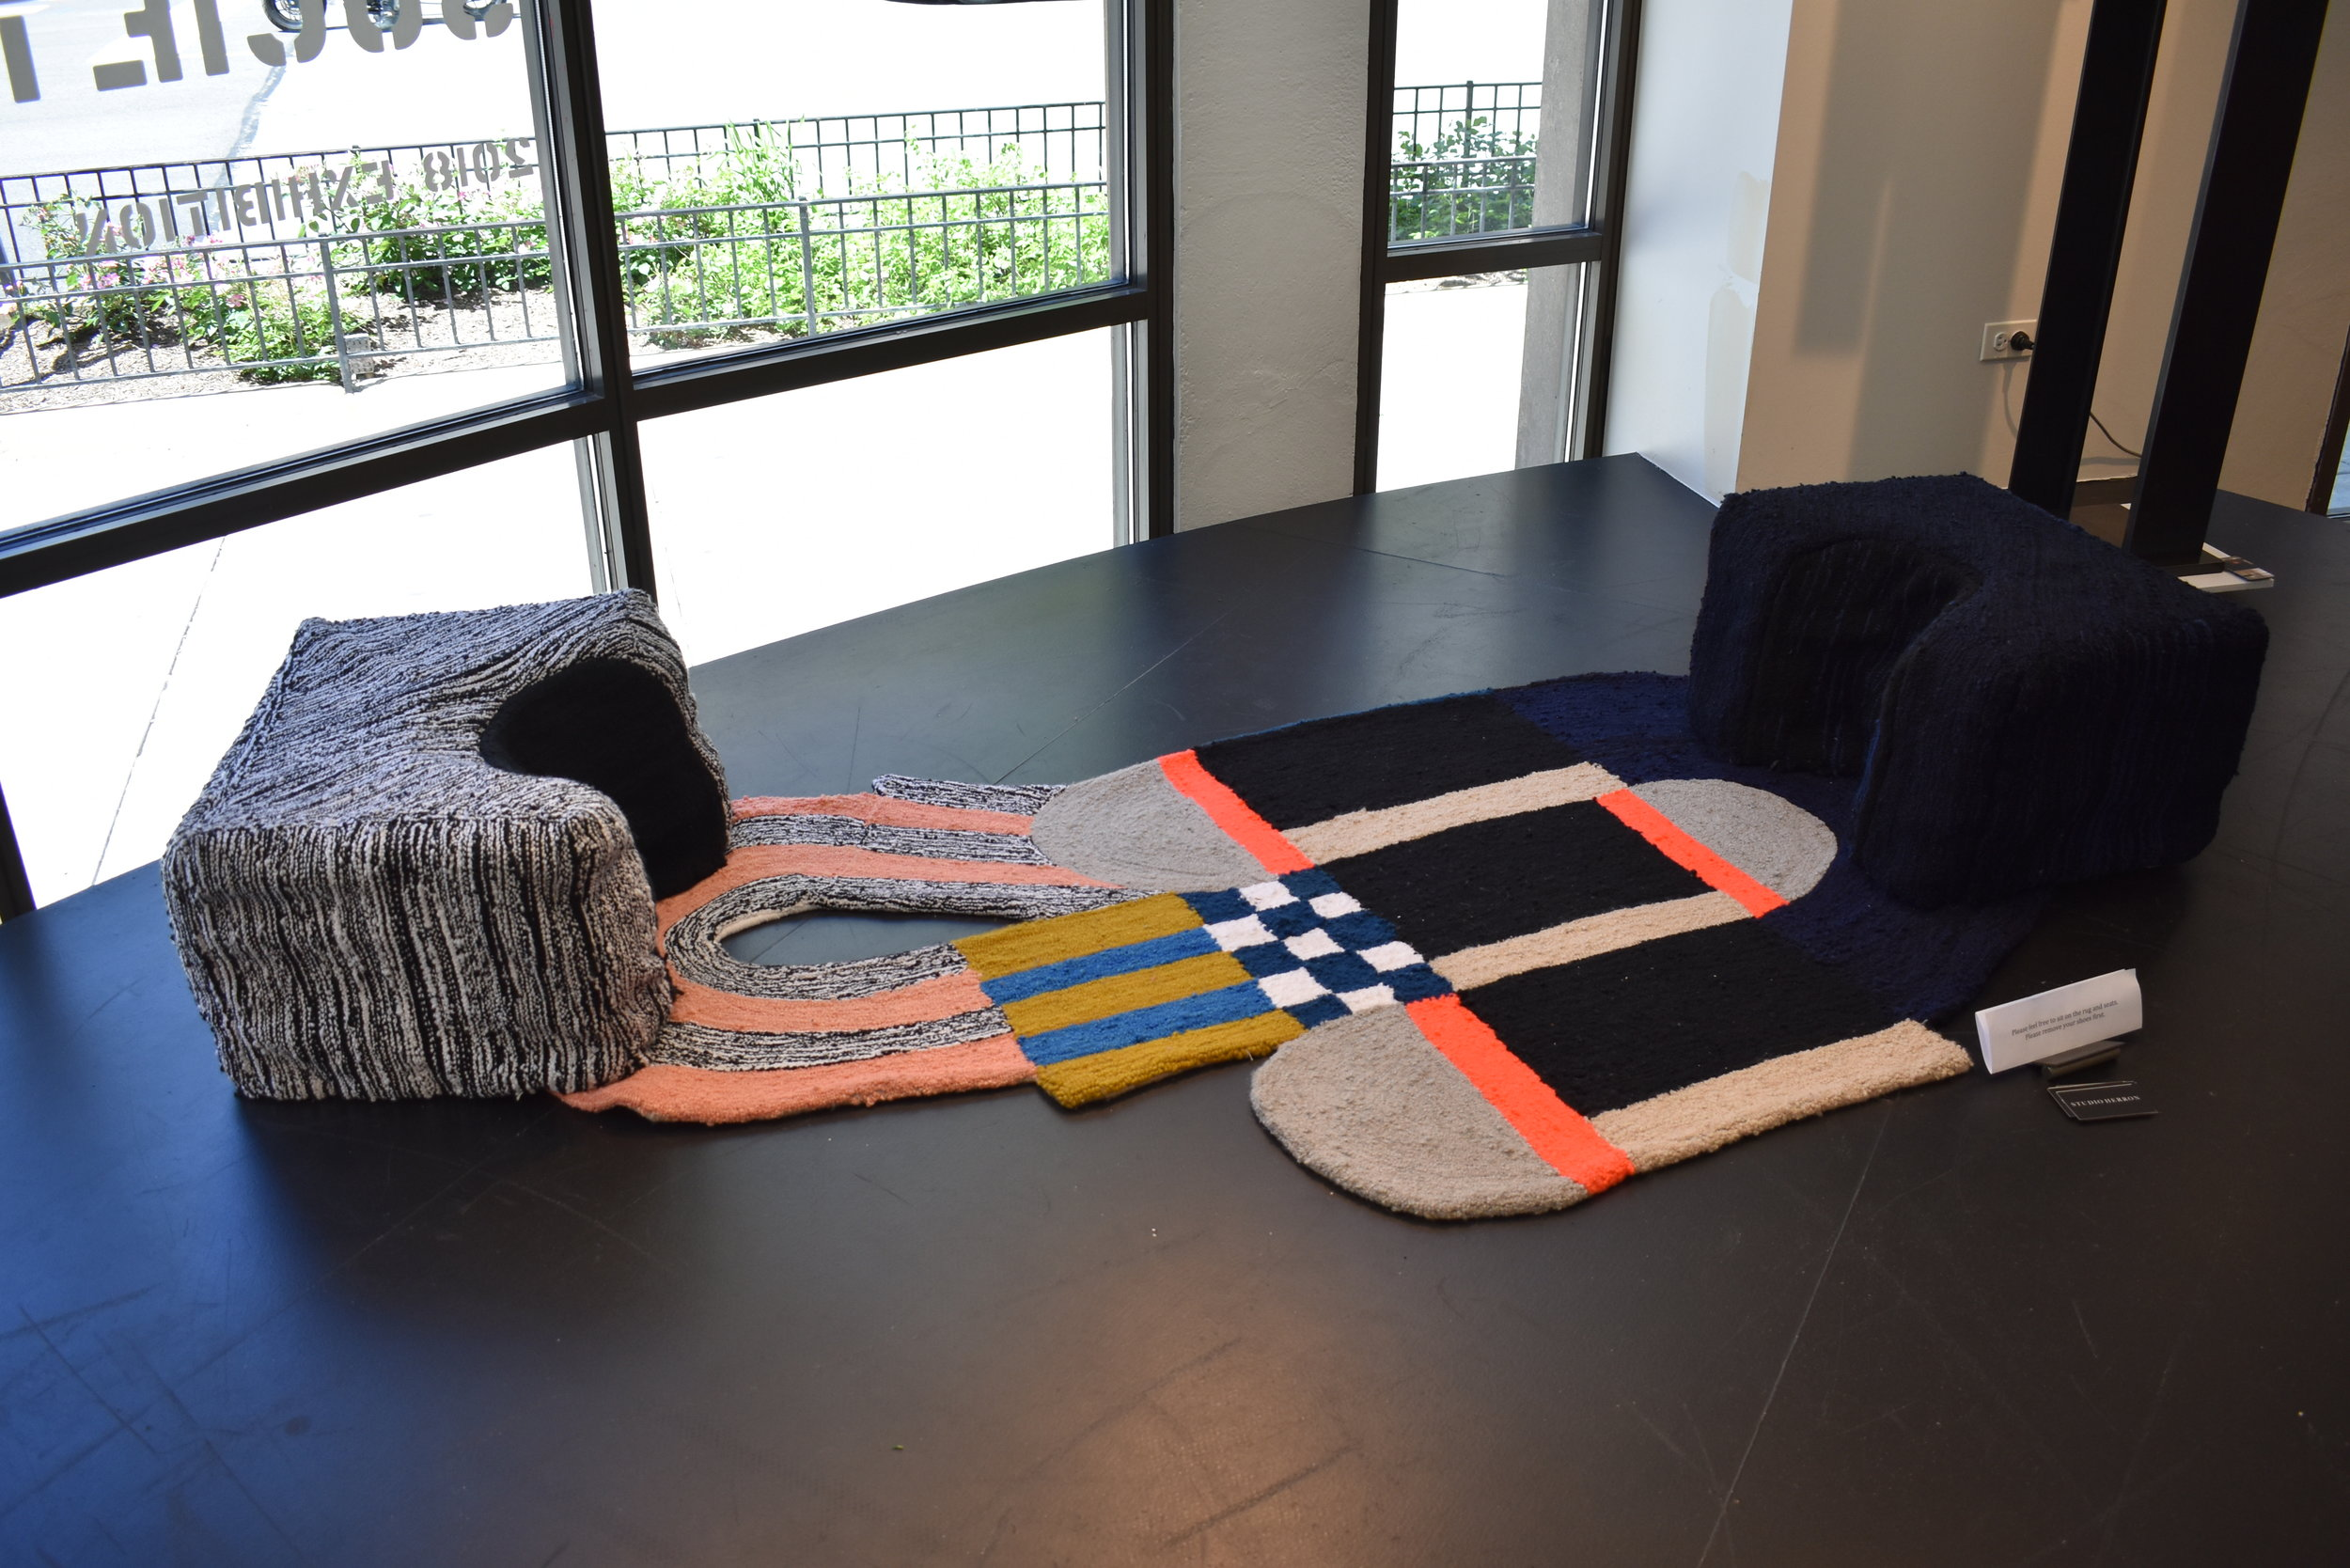 Furniture Rug, By Dee Clements for the Object Society Group Furniture Show at Montauk Sofa Showroom in Chicago for Neo Con 2018. Photo: Bridgette Buckley Bertran